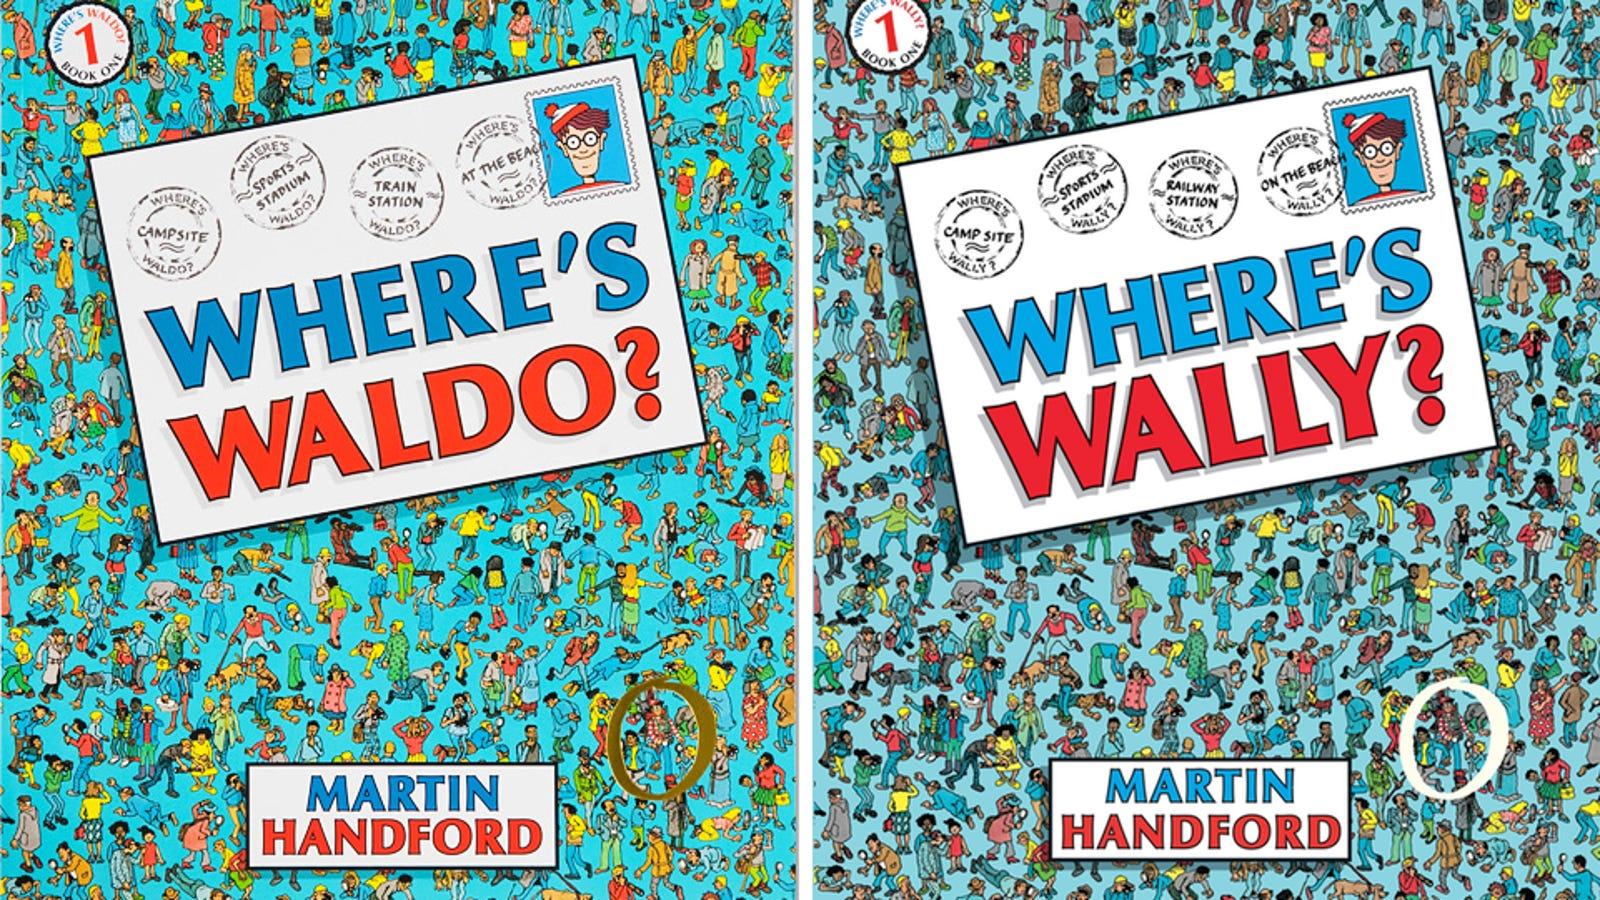 Waldo from Where's Waldo? has different names all over the world